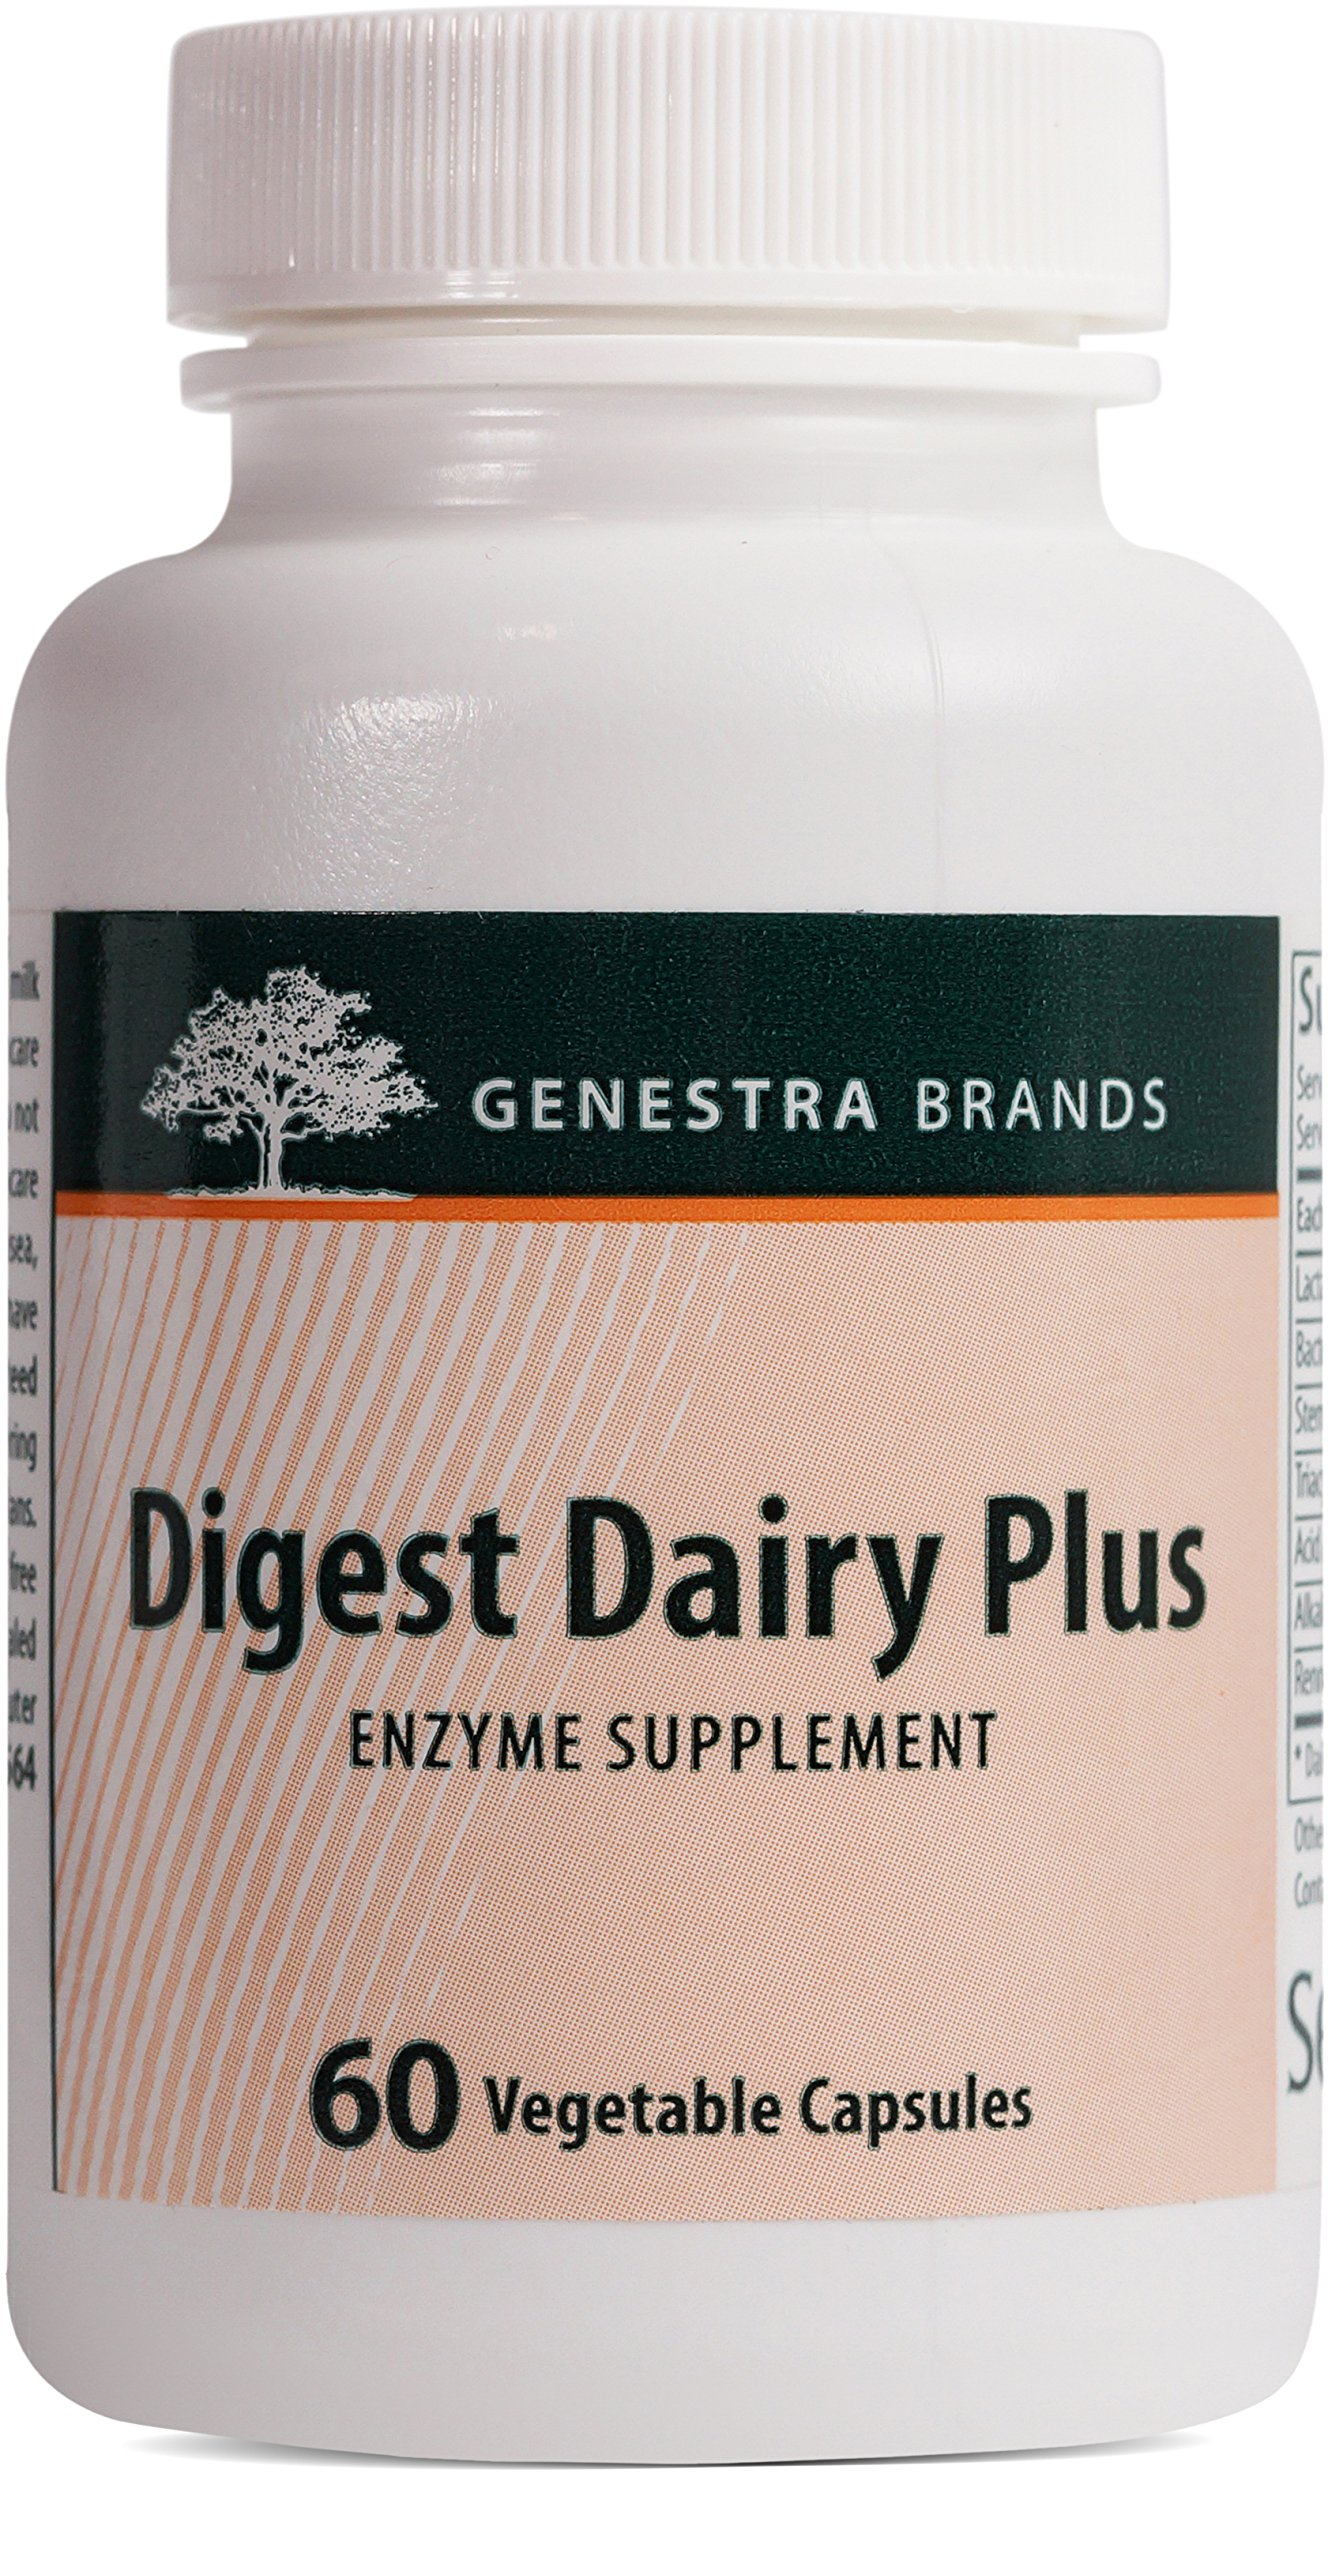 Genestra Brands - Digest Dairy Plus - Enzyme Supplement to Assist Digestion of Dairy Products* - 60 Vegetable Capsules